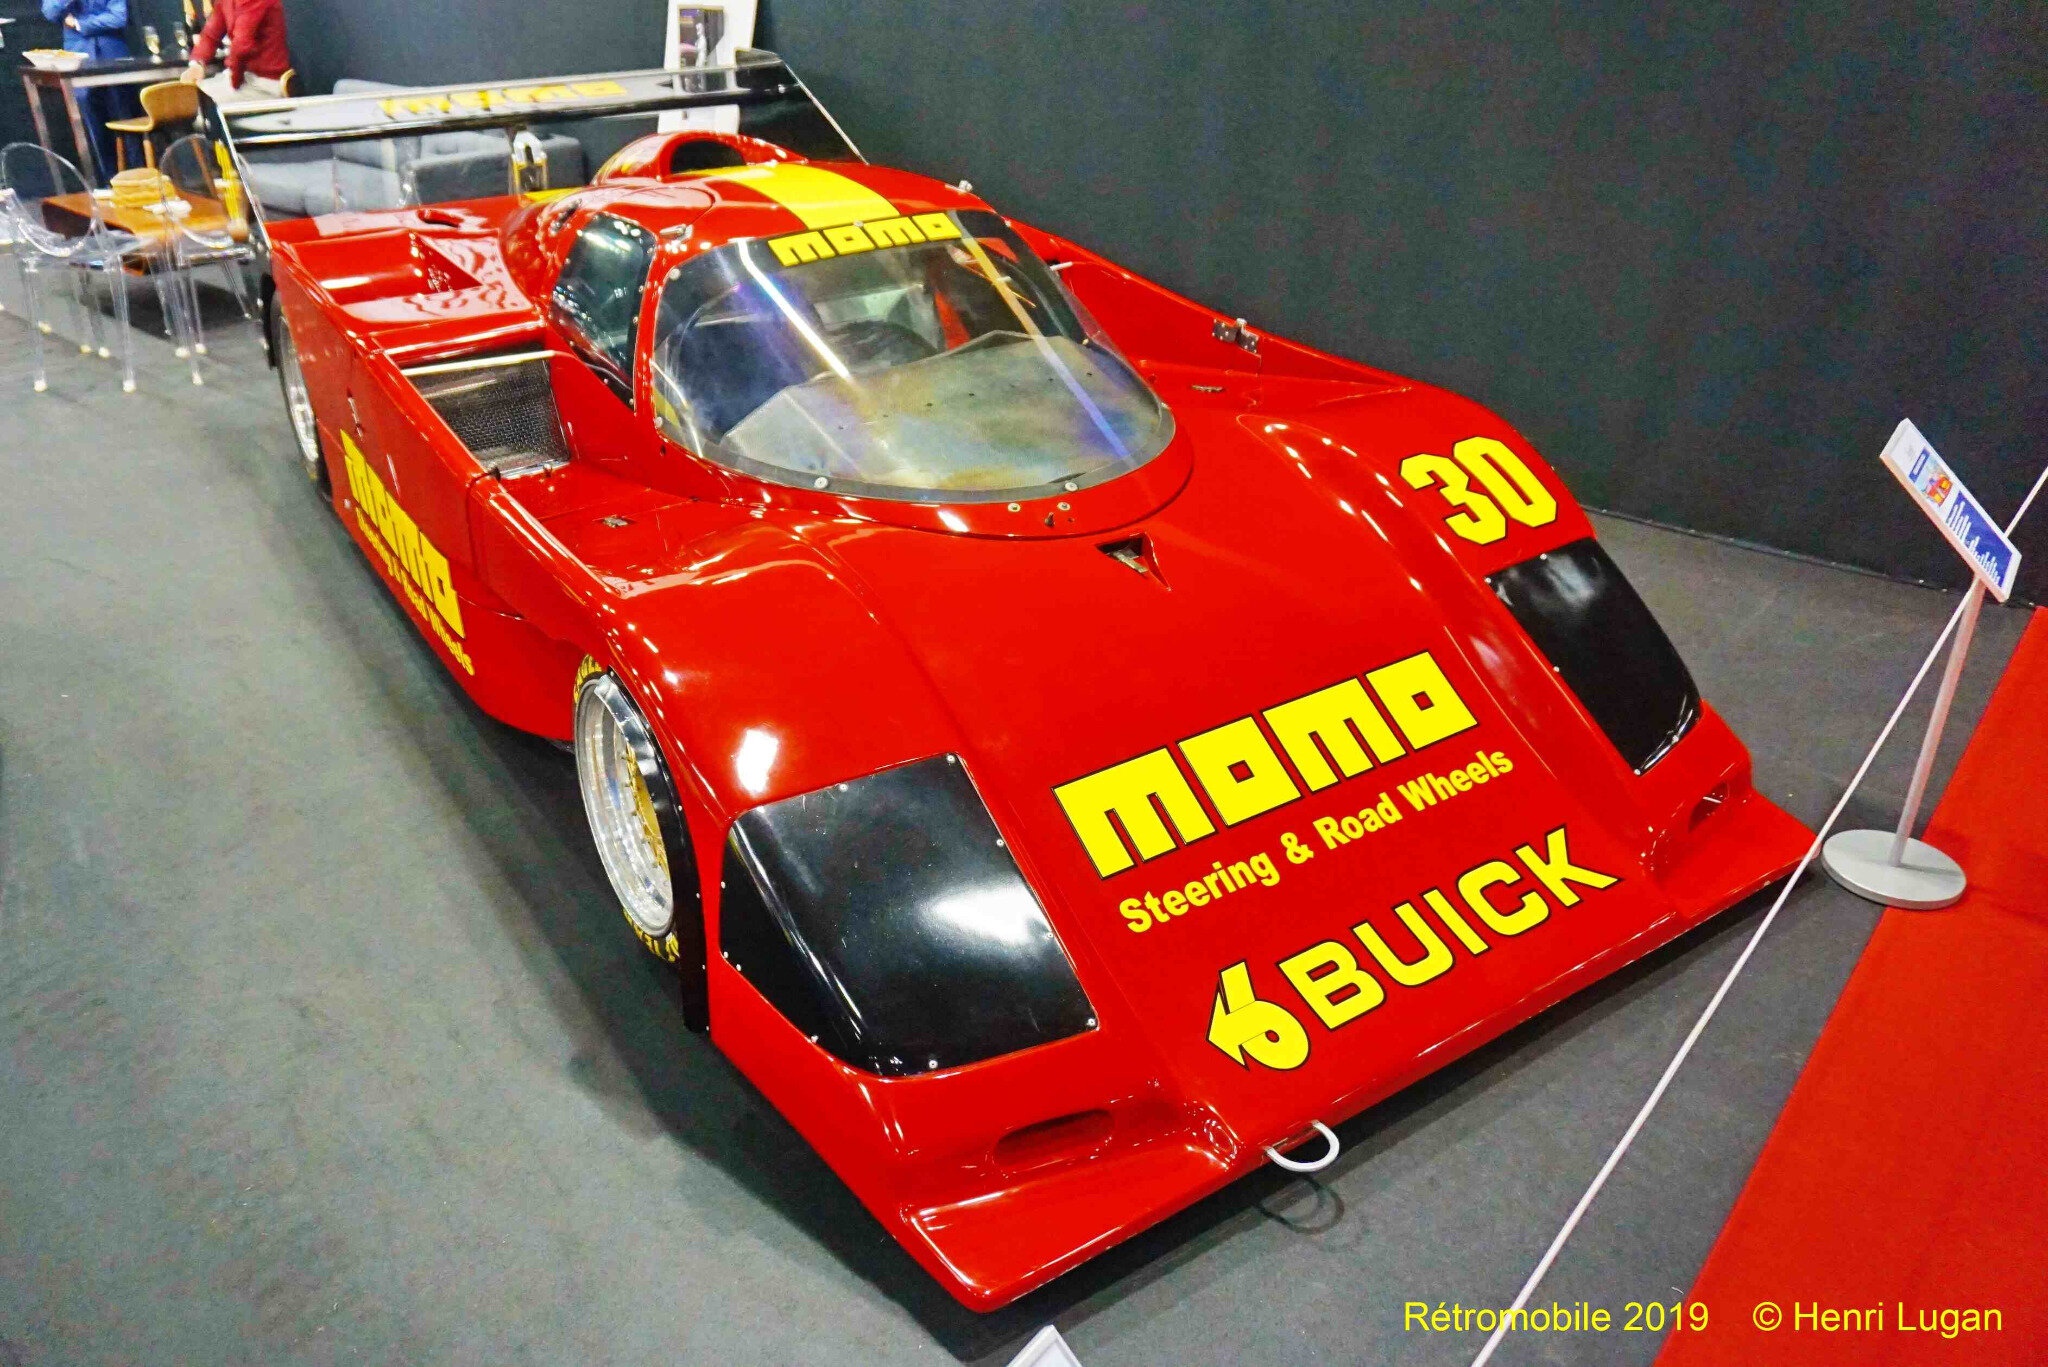 March 96 G Momo Buick #10_01 - 1988 [UK] HL_GF